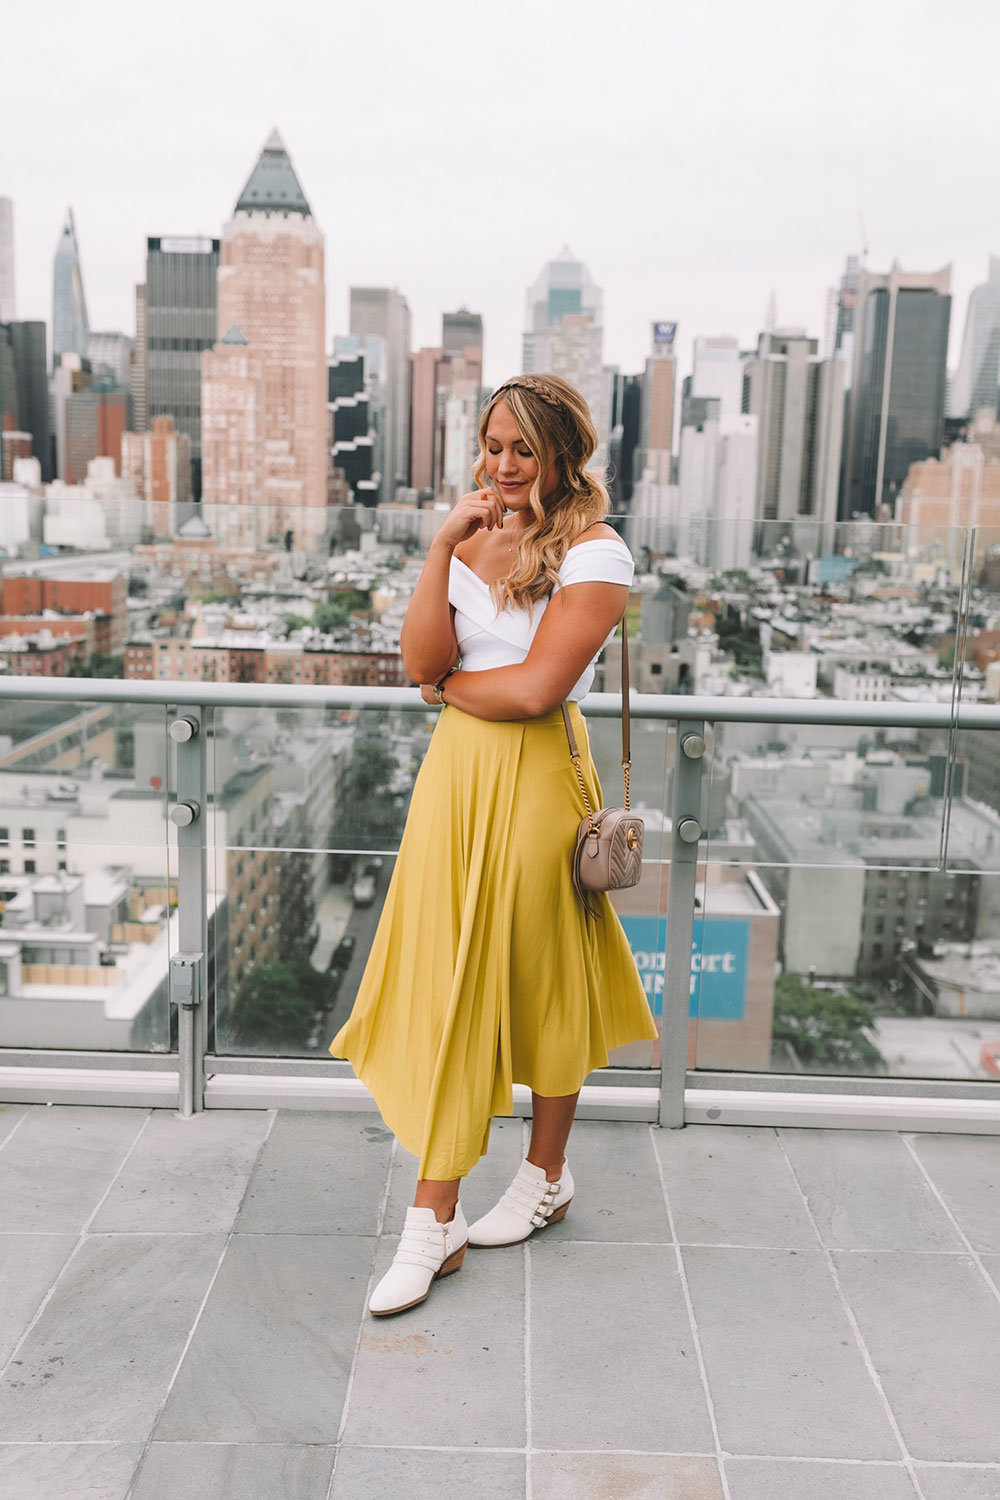 OKC blogger Amanda Martin wearing a bright green midi skirt in New York City